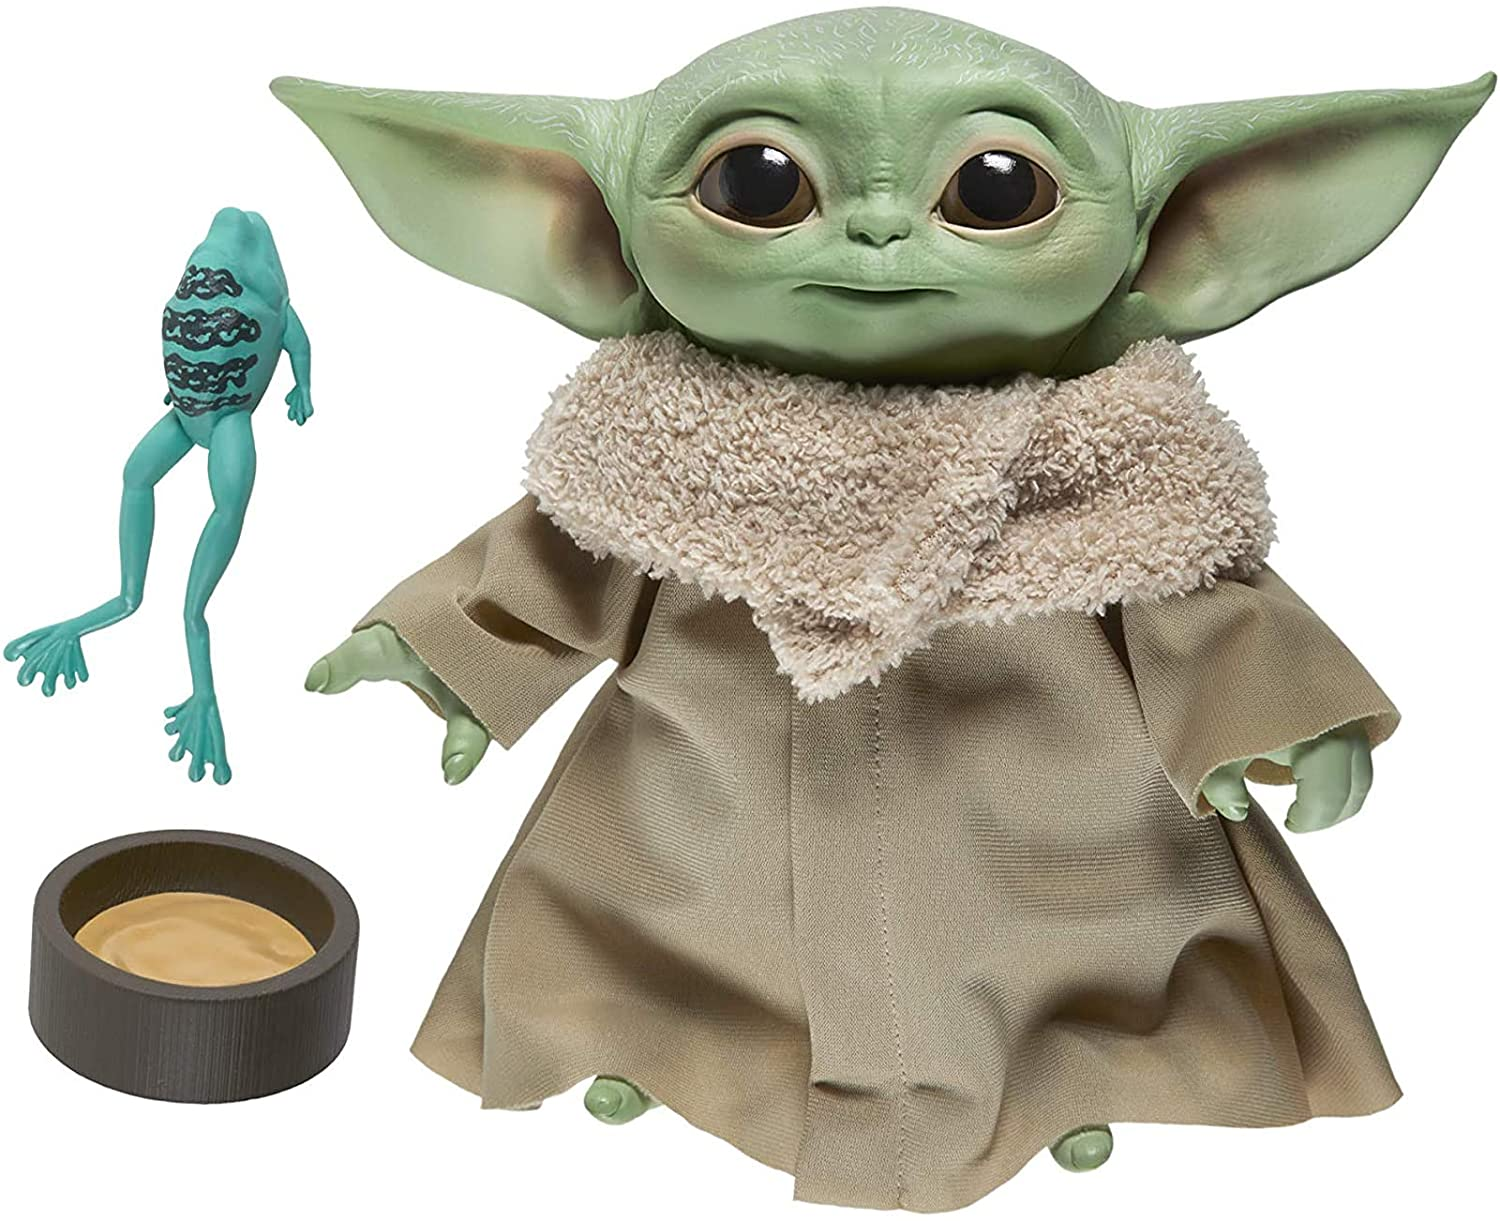 The Child Talking Plush Figure with Sounds and Accessories, The Mandalorian Toy, Baby Yoda